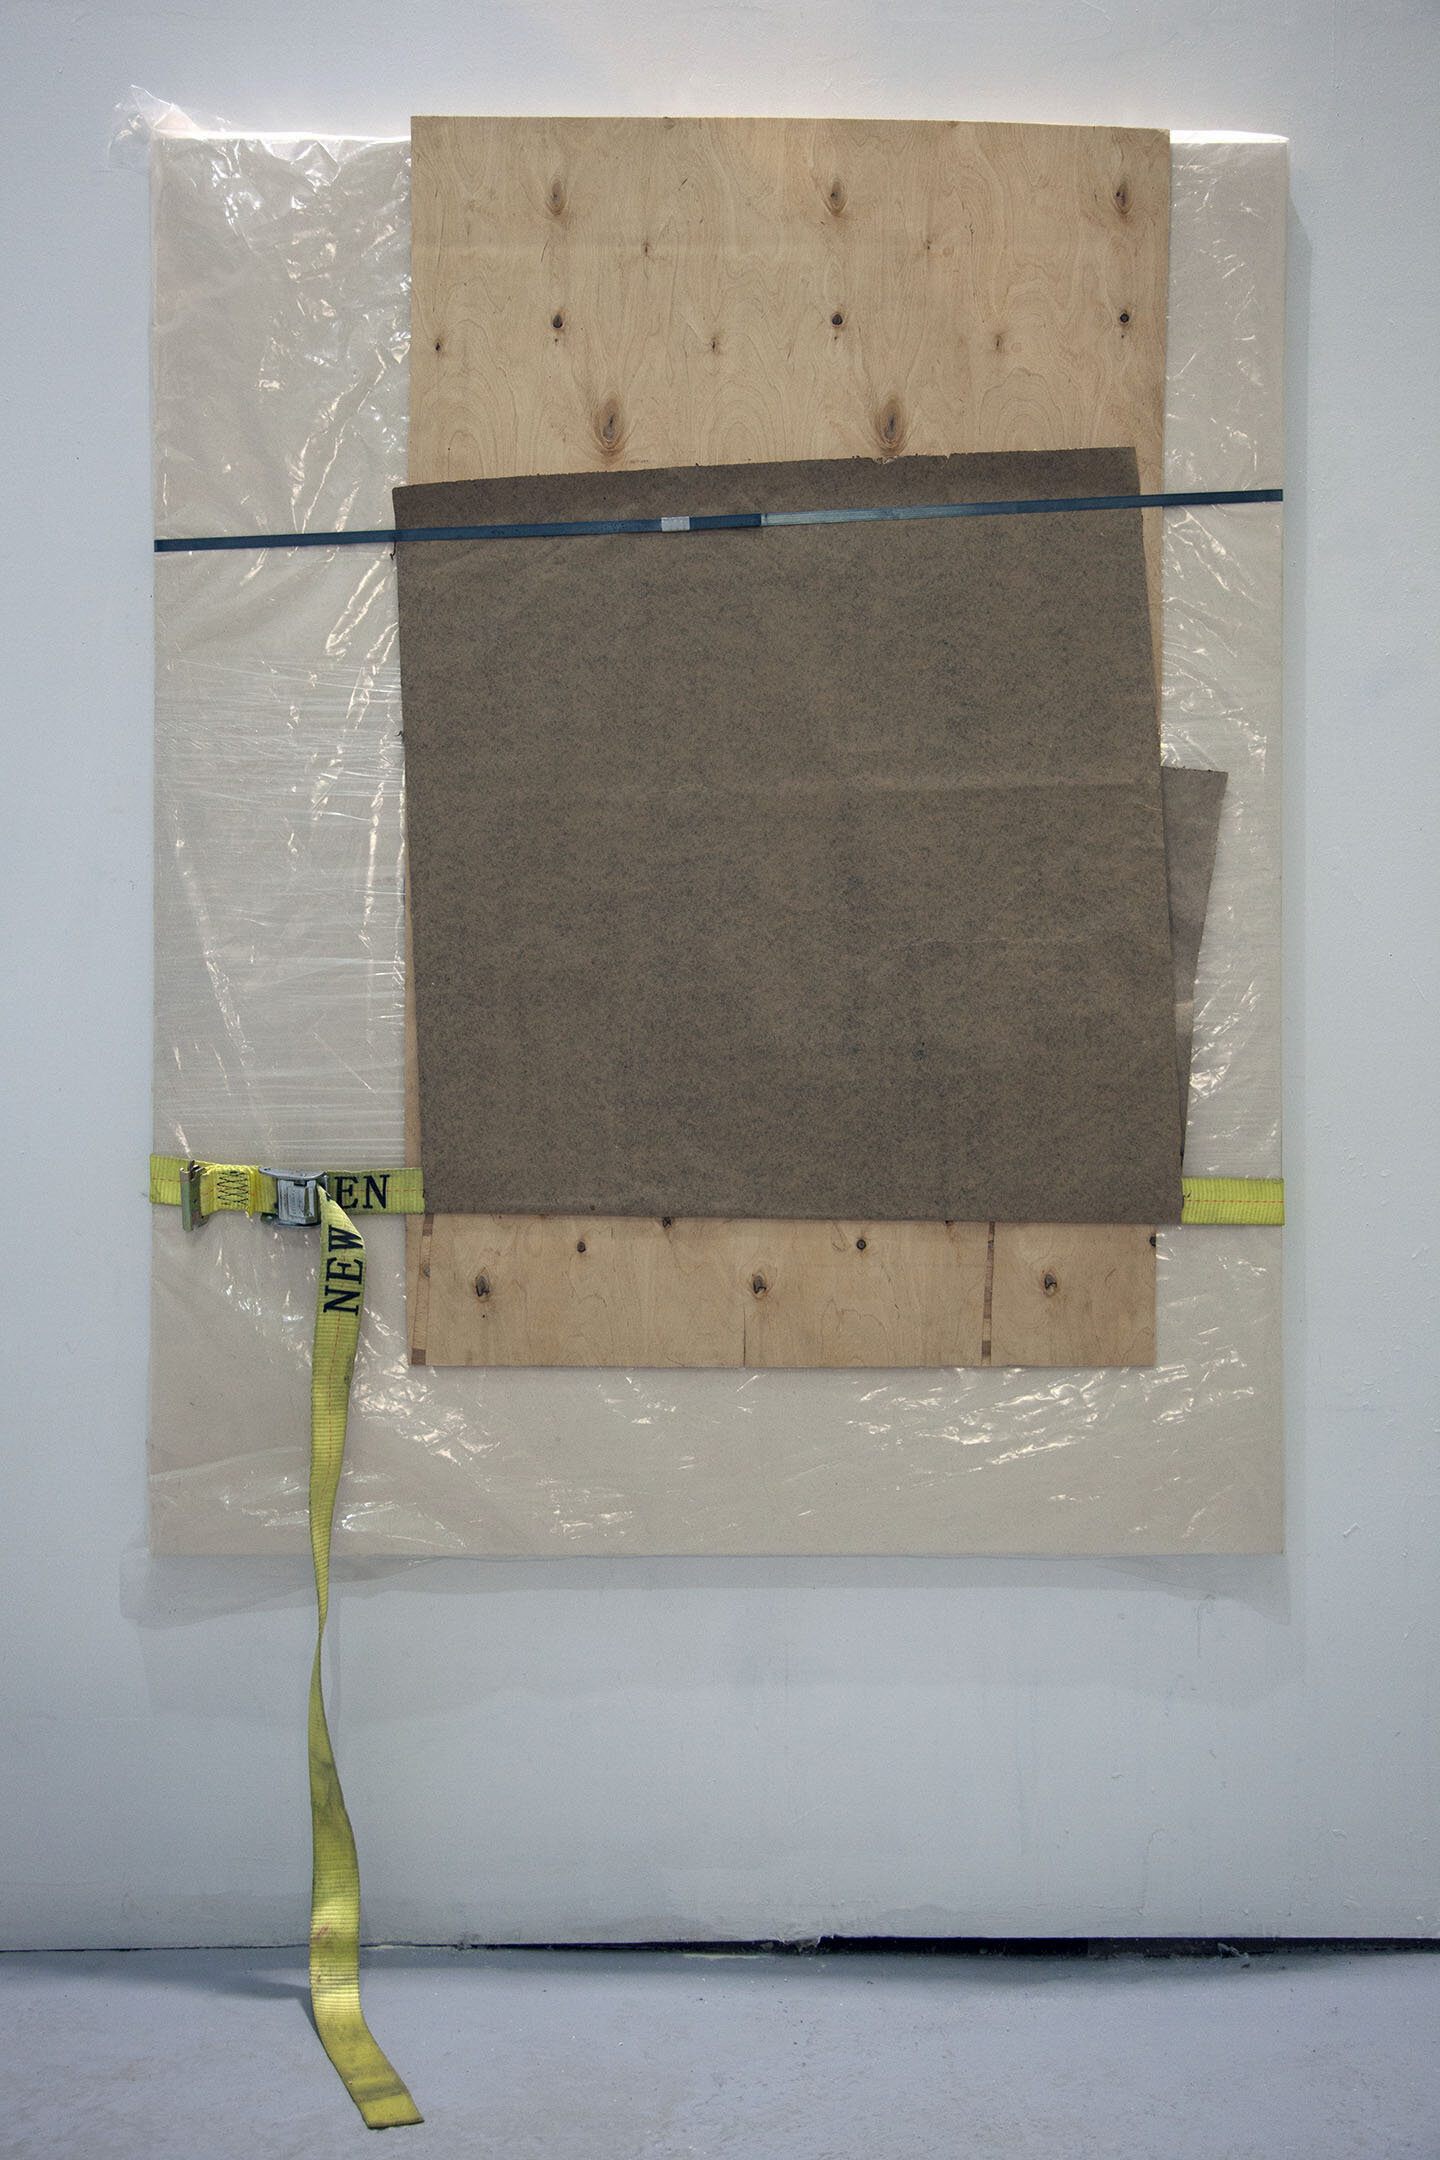 Preserved Paint [1000 mL Neutral Grey] , 2018, acrylic on canvas over panel, plastic wrap, plastic sheeting, wood, packing paper, steel banding strap, nylon strap, 61 x 48 inches.